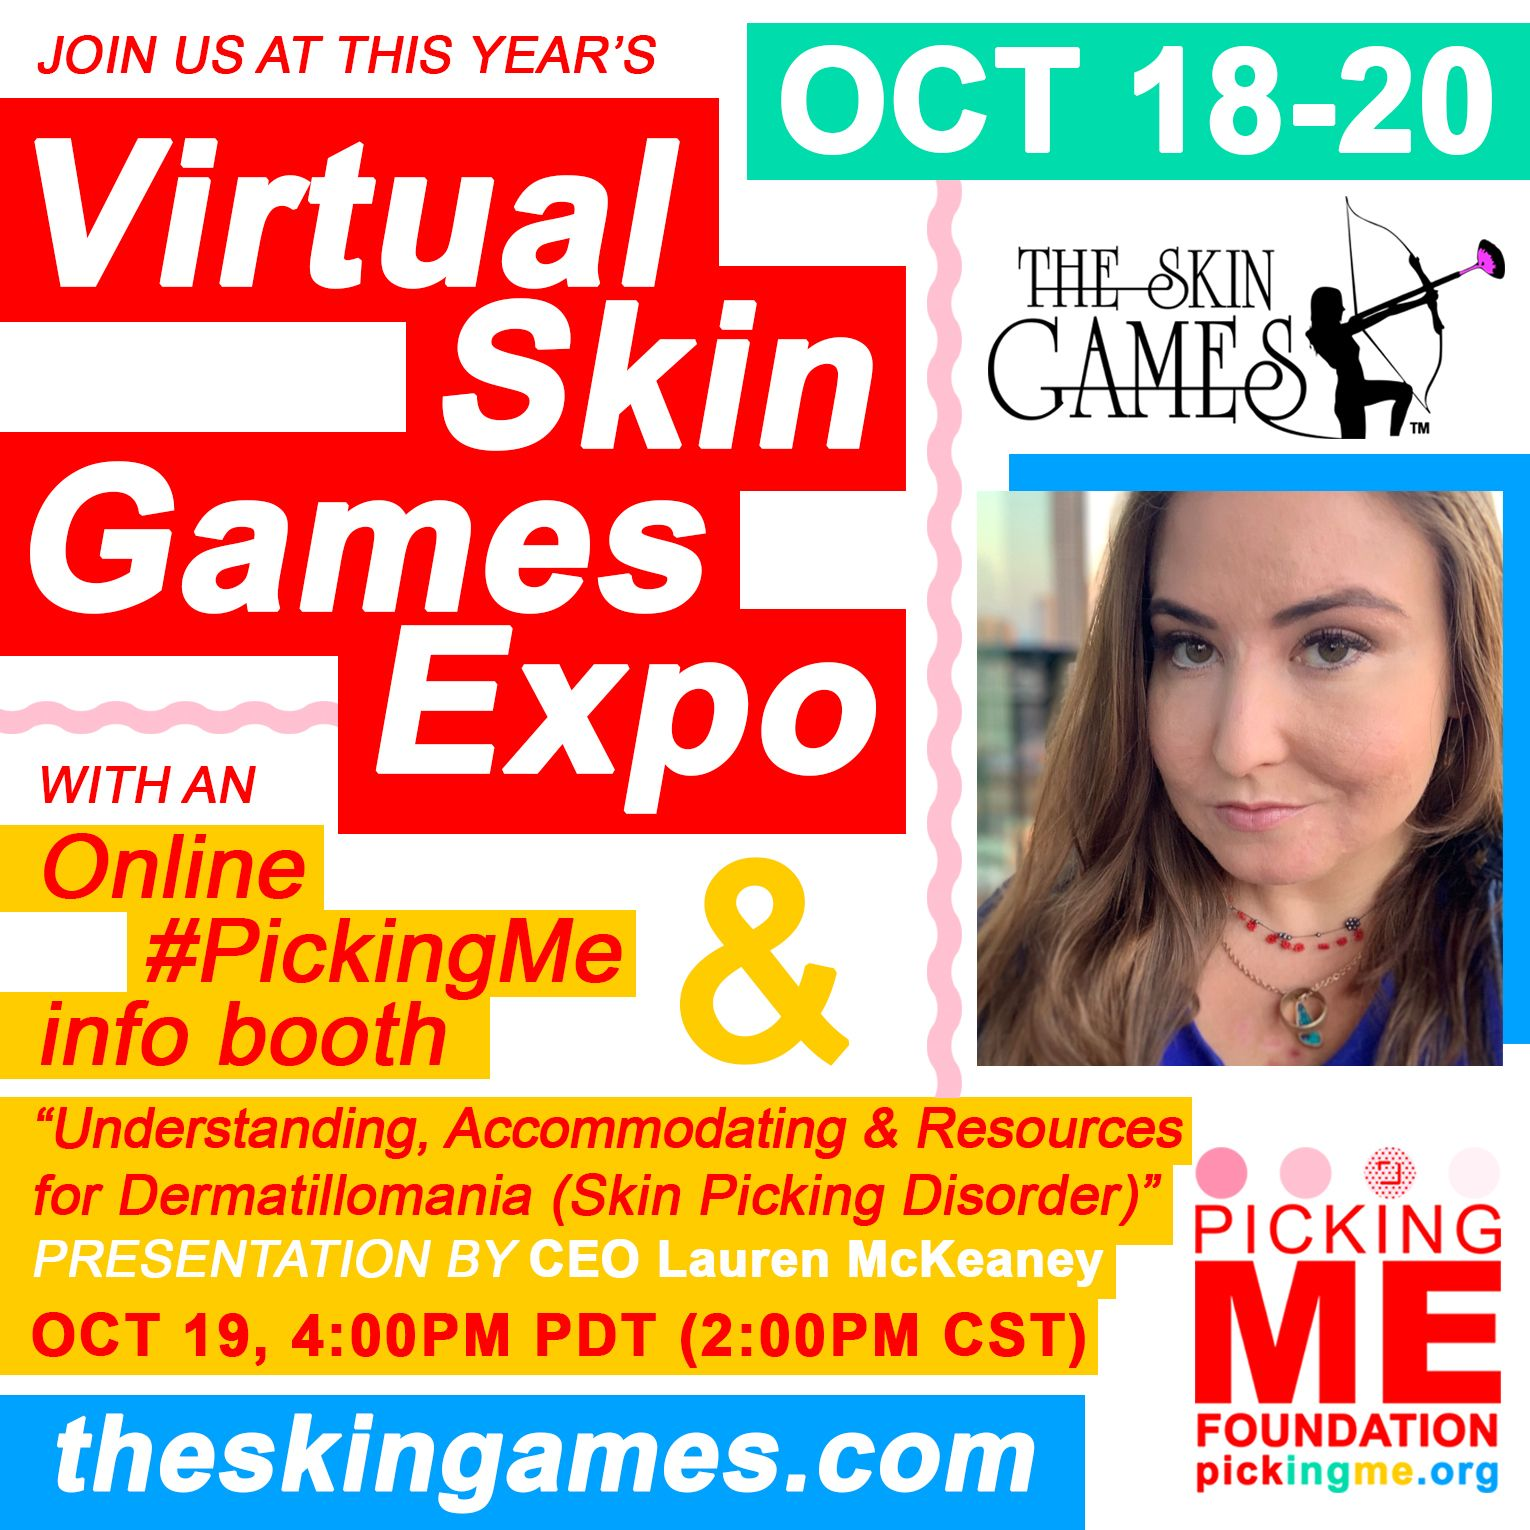 The Virtual Skin Games Expo